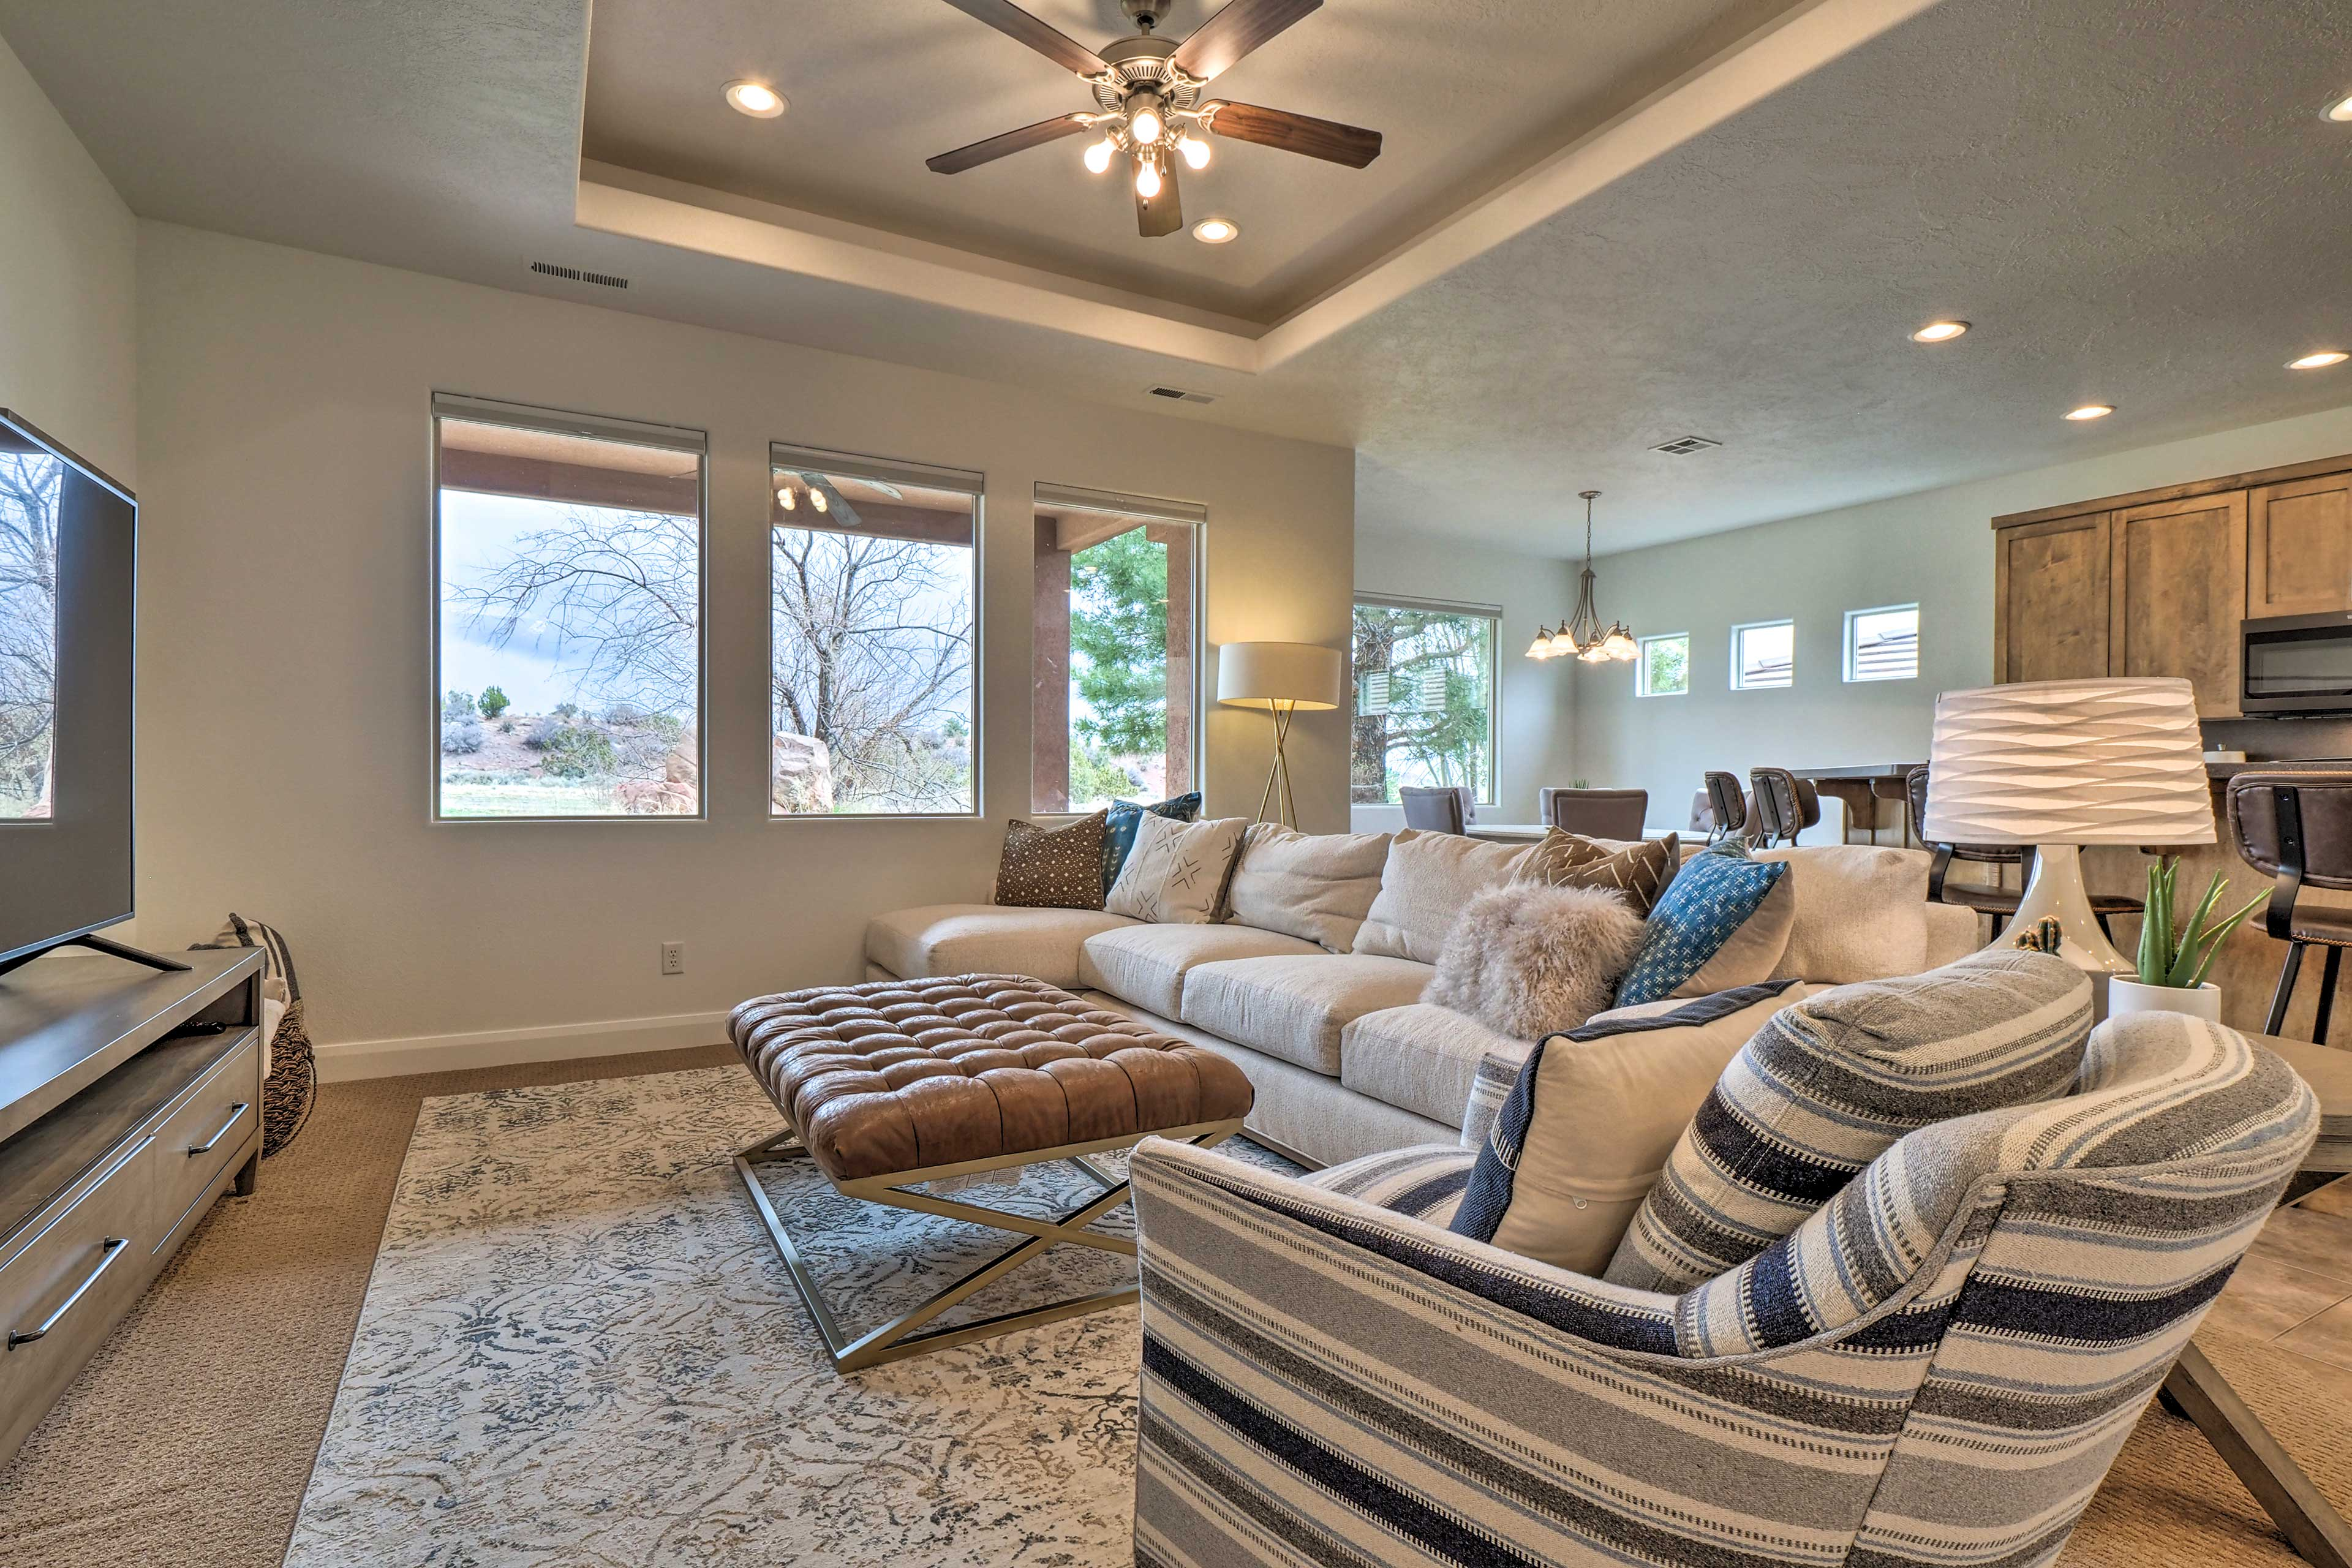 The living area hosts cozy furnishings.